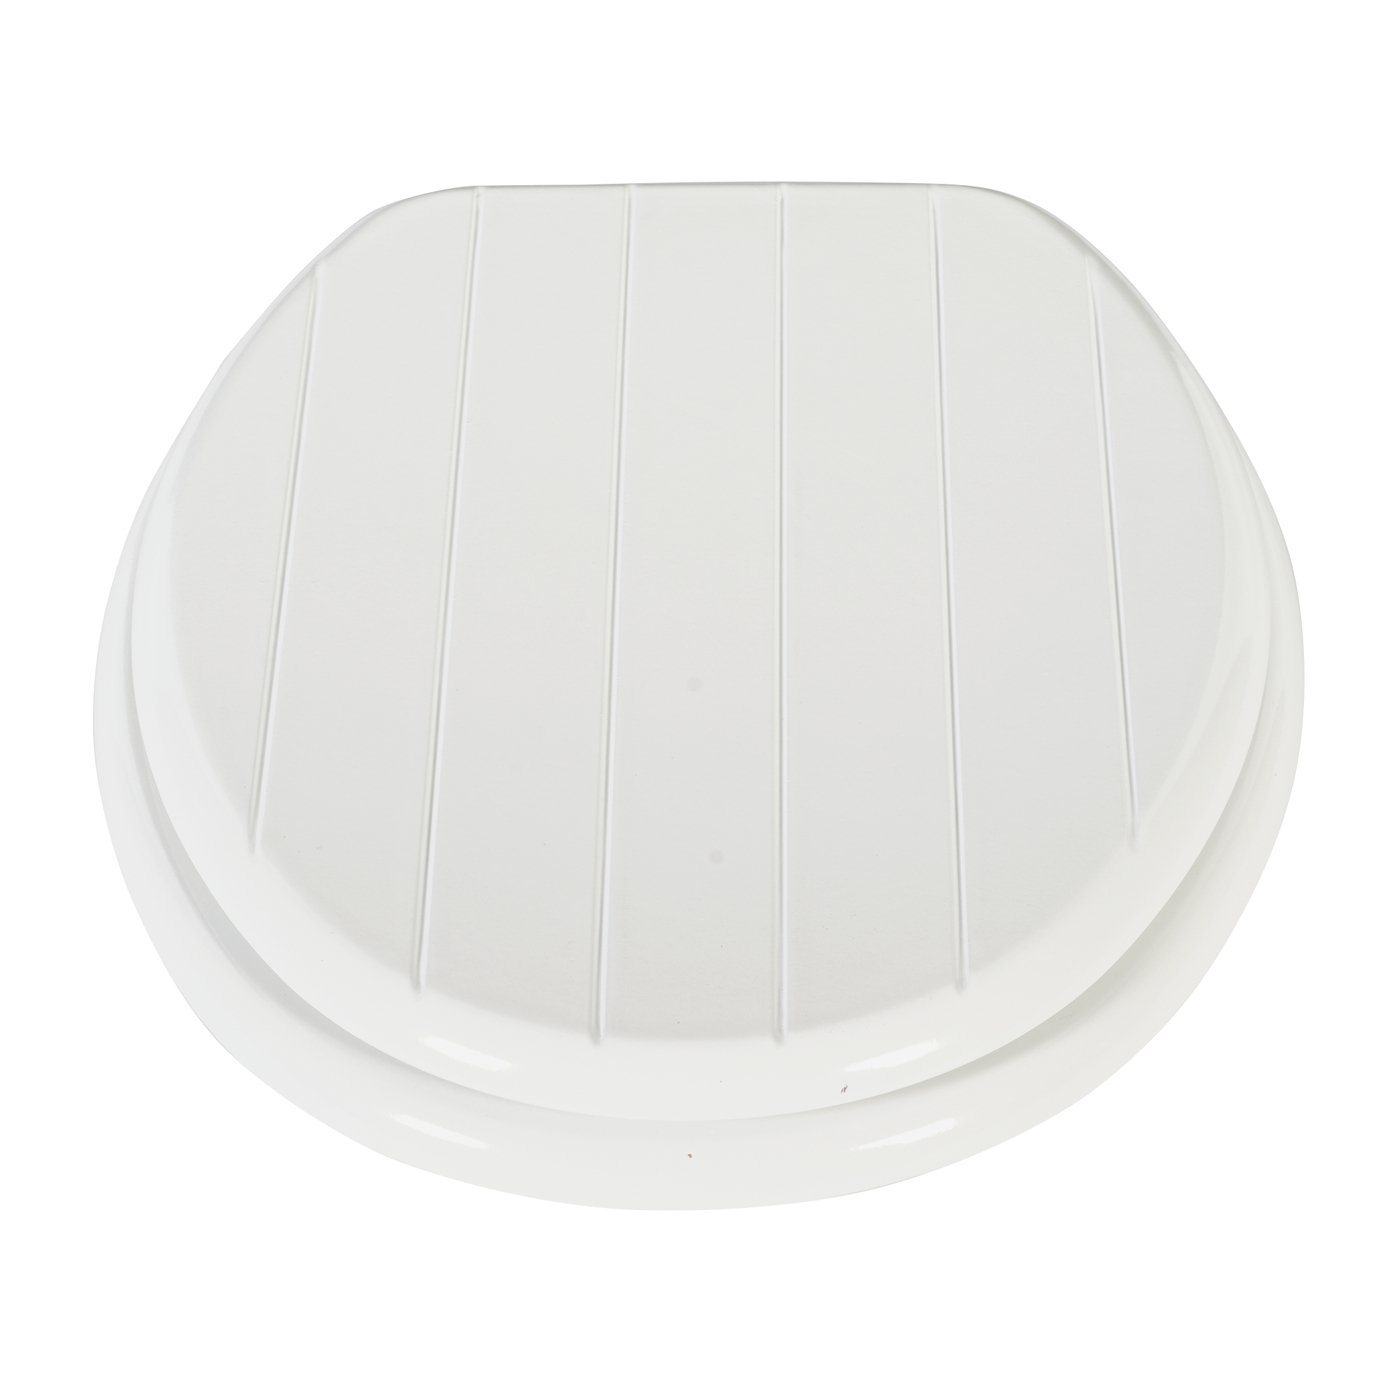 Argos Home Moulded Wood Shaker Style Toilet Seat - White